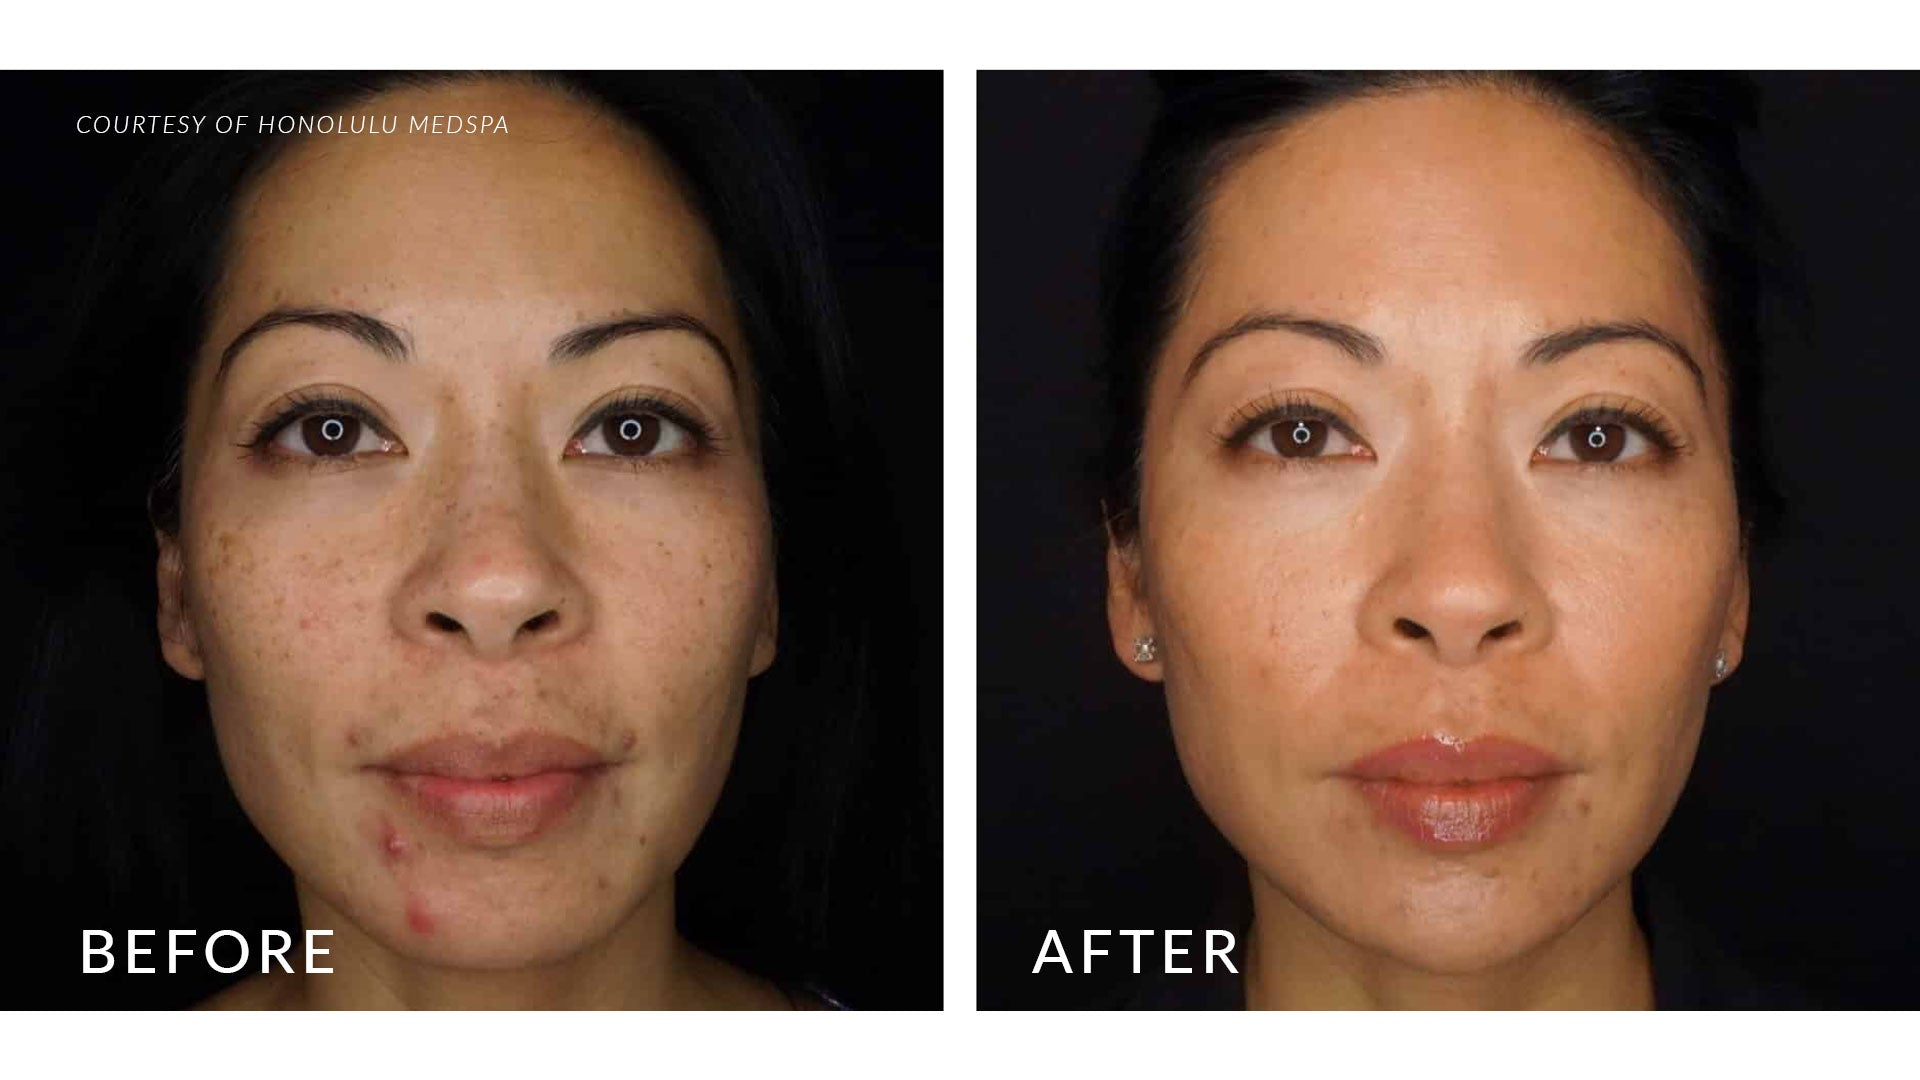 MEDICAL GRADE FACIALS - Honolulu MedSpa